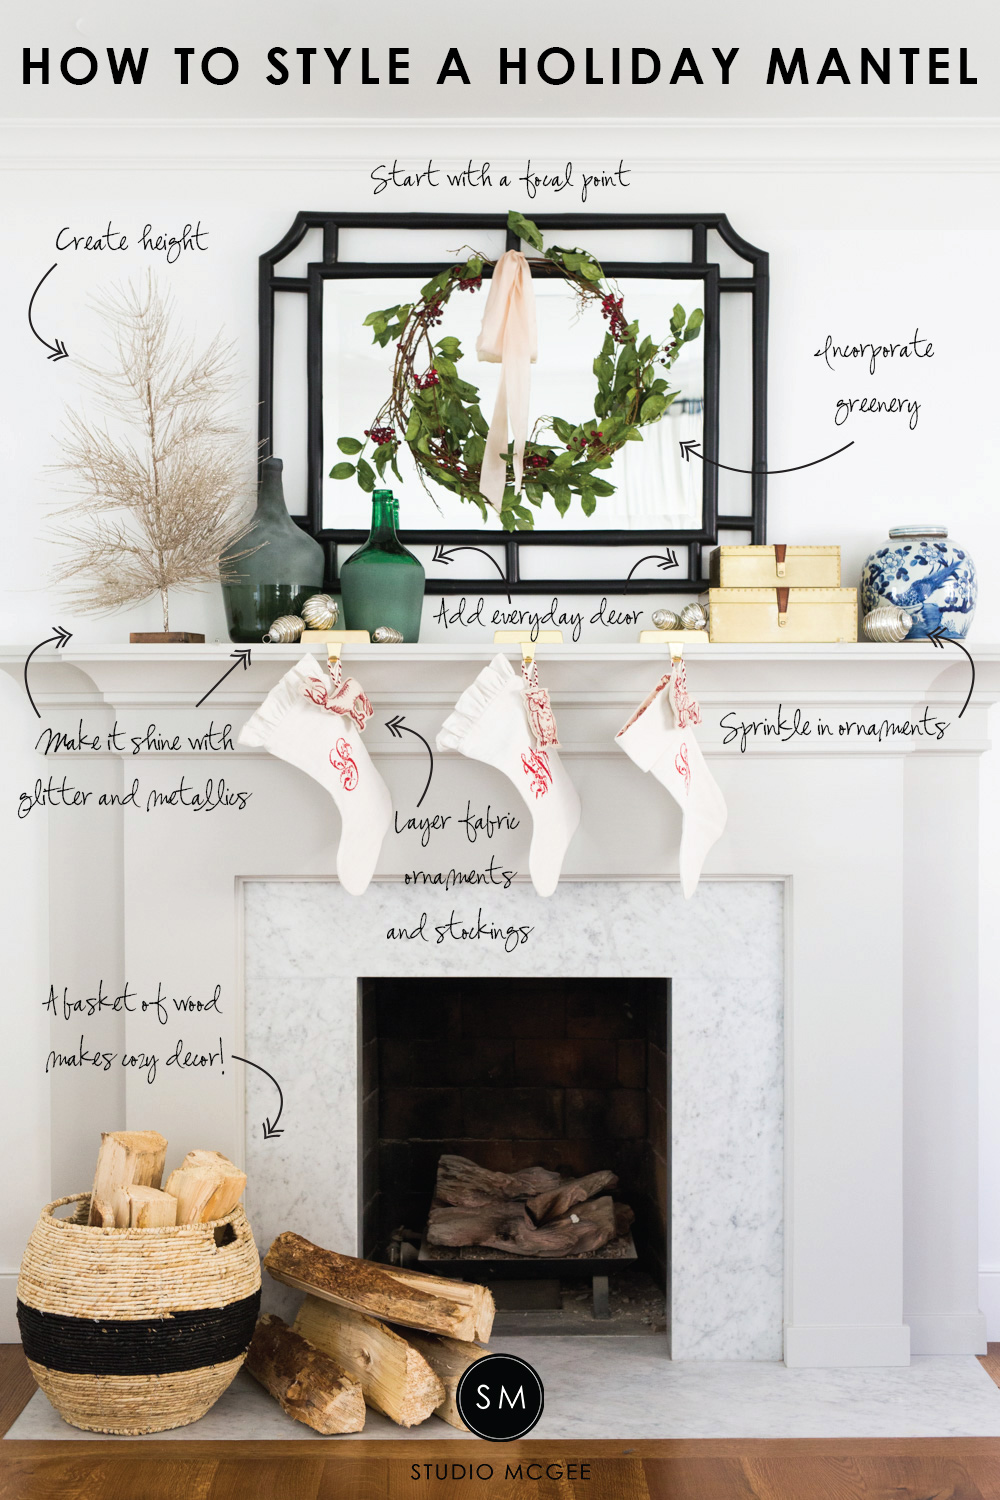 How to Style a Holiday Mantel